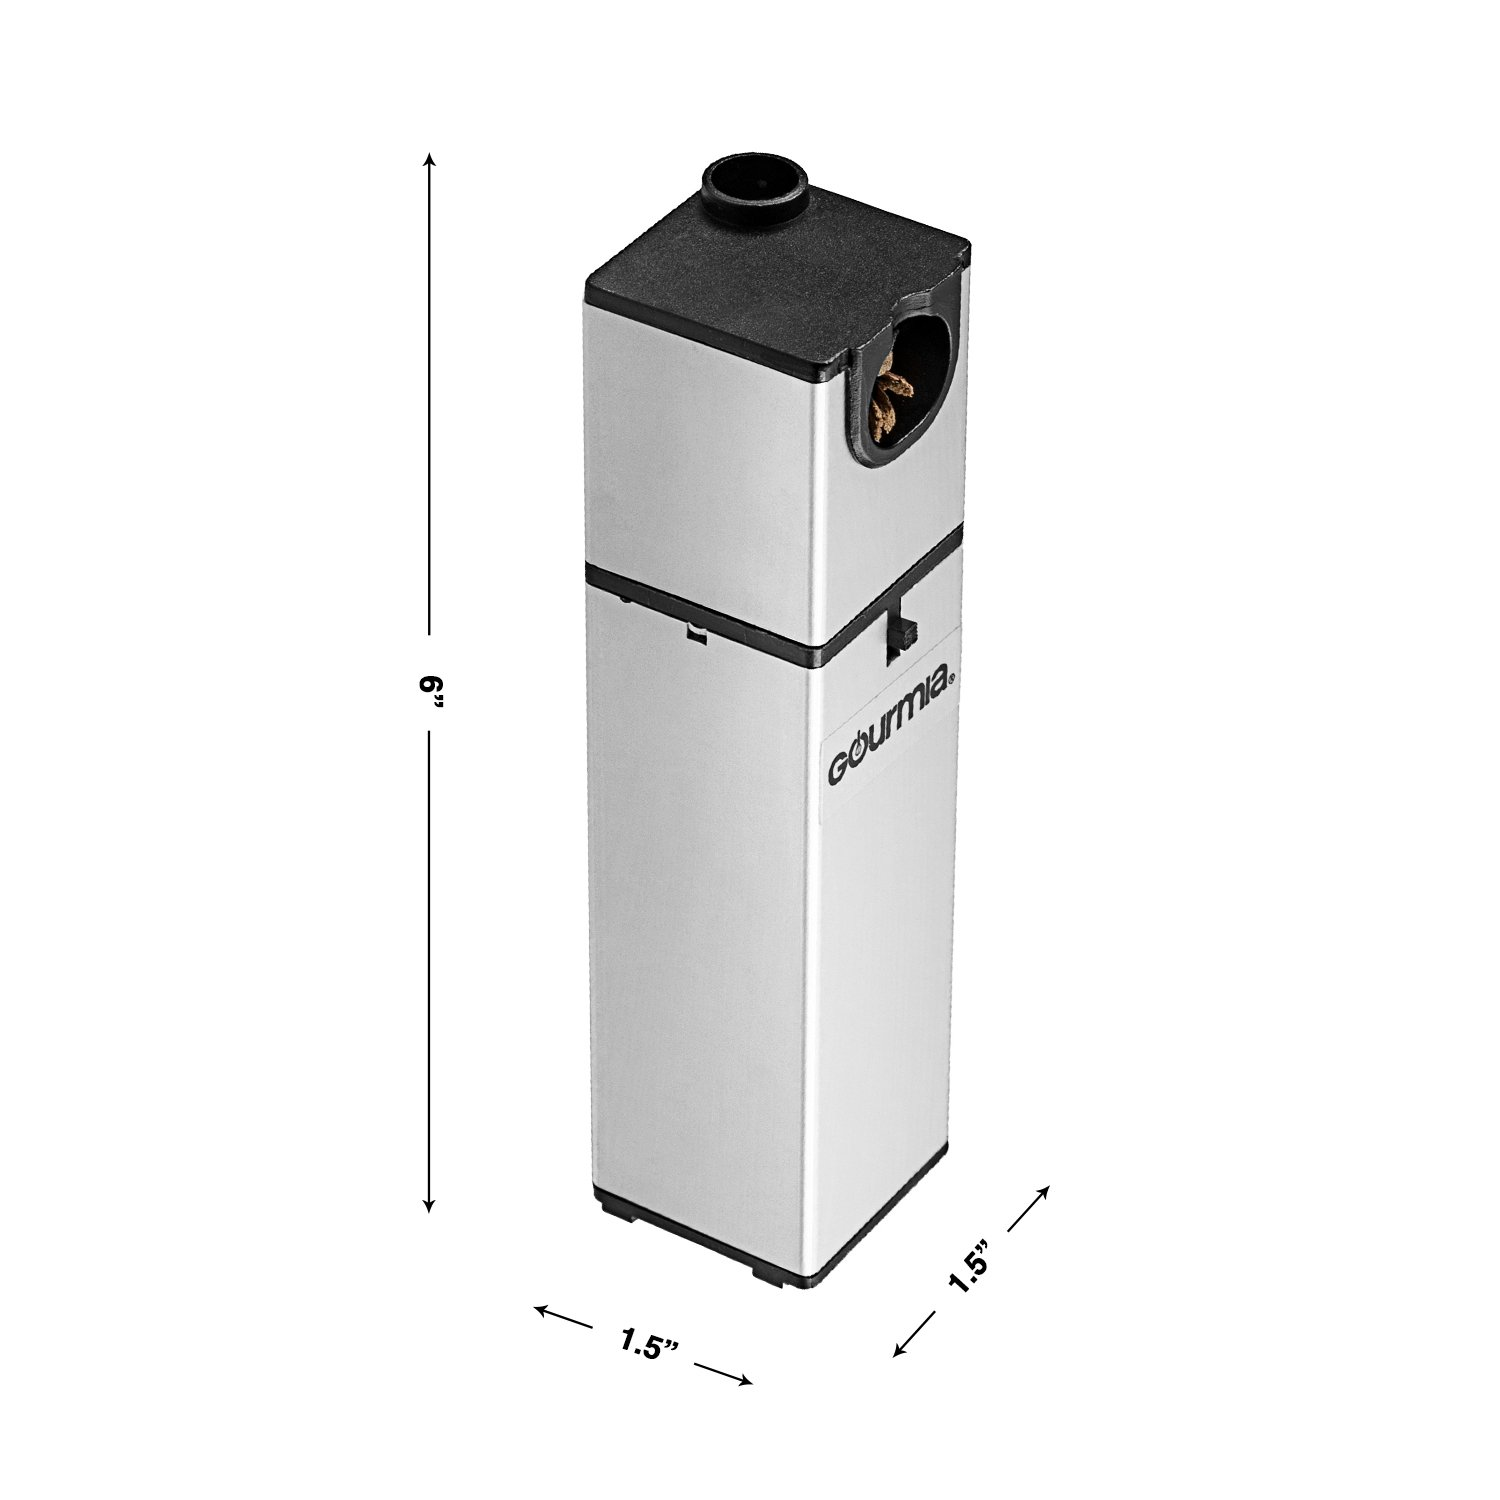 Gourmia GSM160 Portable Infusion Smoker Cool Smoke to Enhance Taste - Battery Operated - Compact & Convenient - Silver - Free E-Recipe Book Included